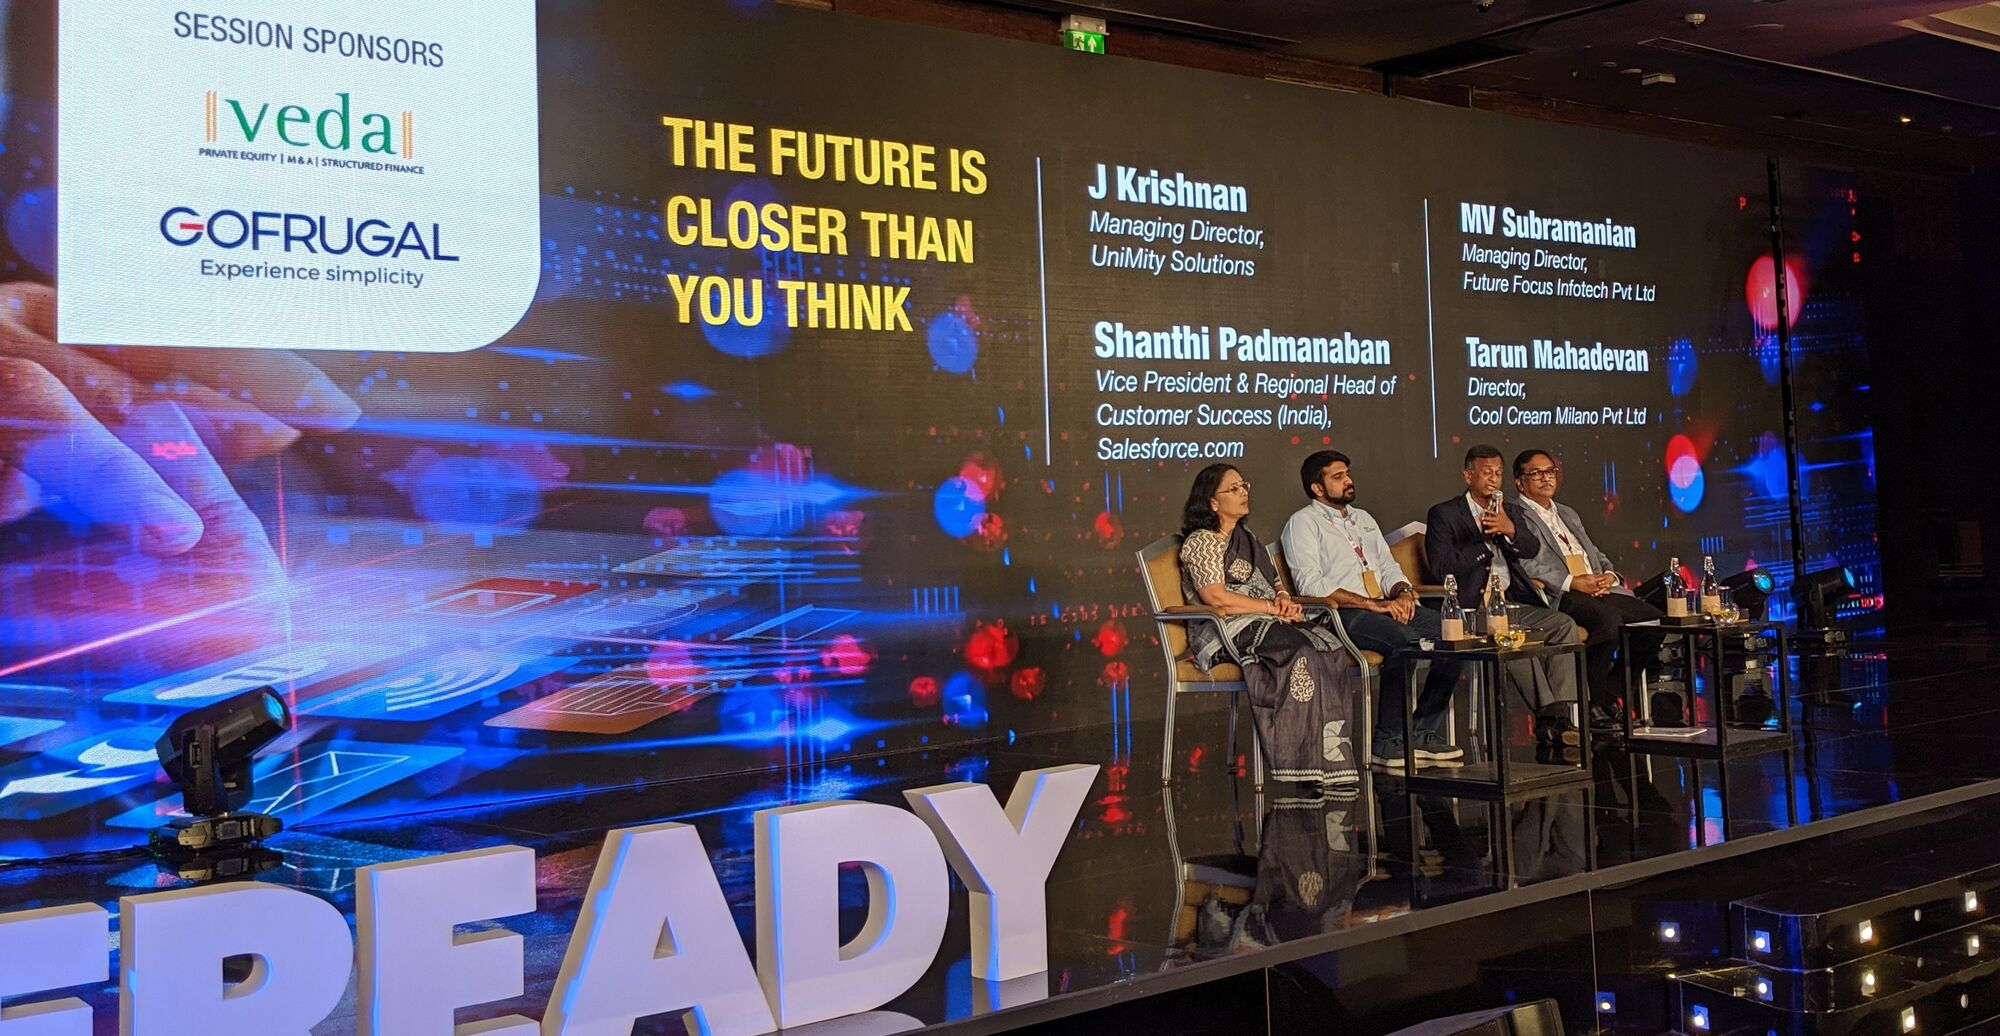 """The future is closer than you think"" panel hosted by J Krishnan"